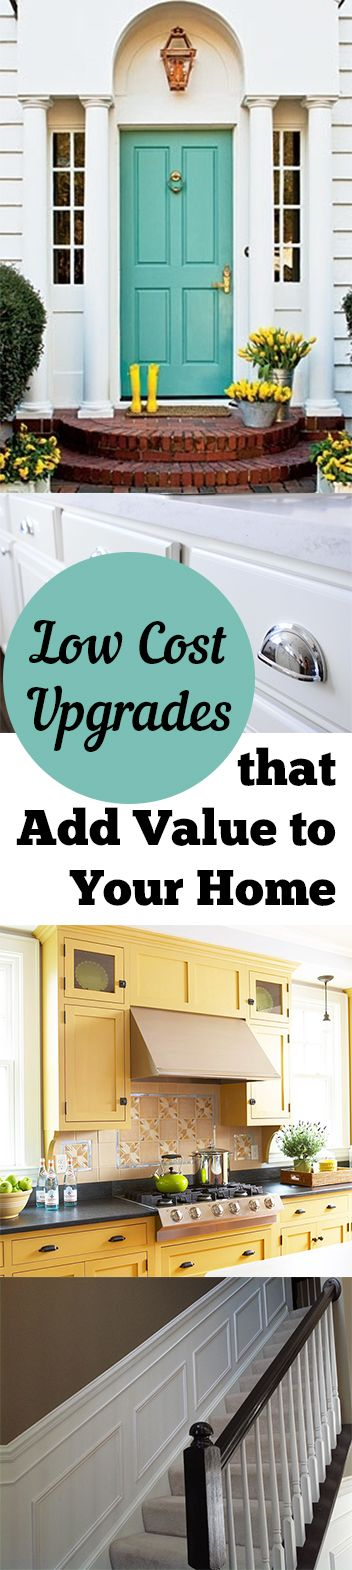 Low Cost Upgrades That Add Value To Your Home Home Upgrades